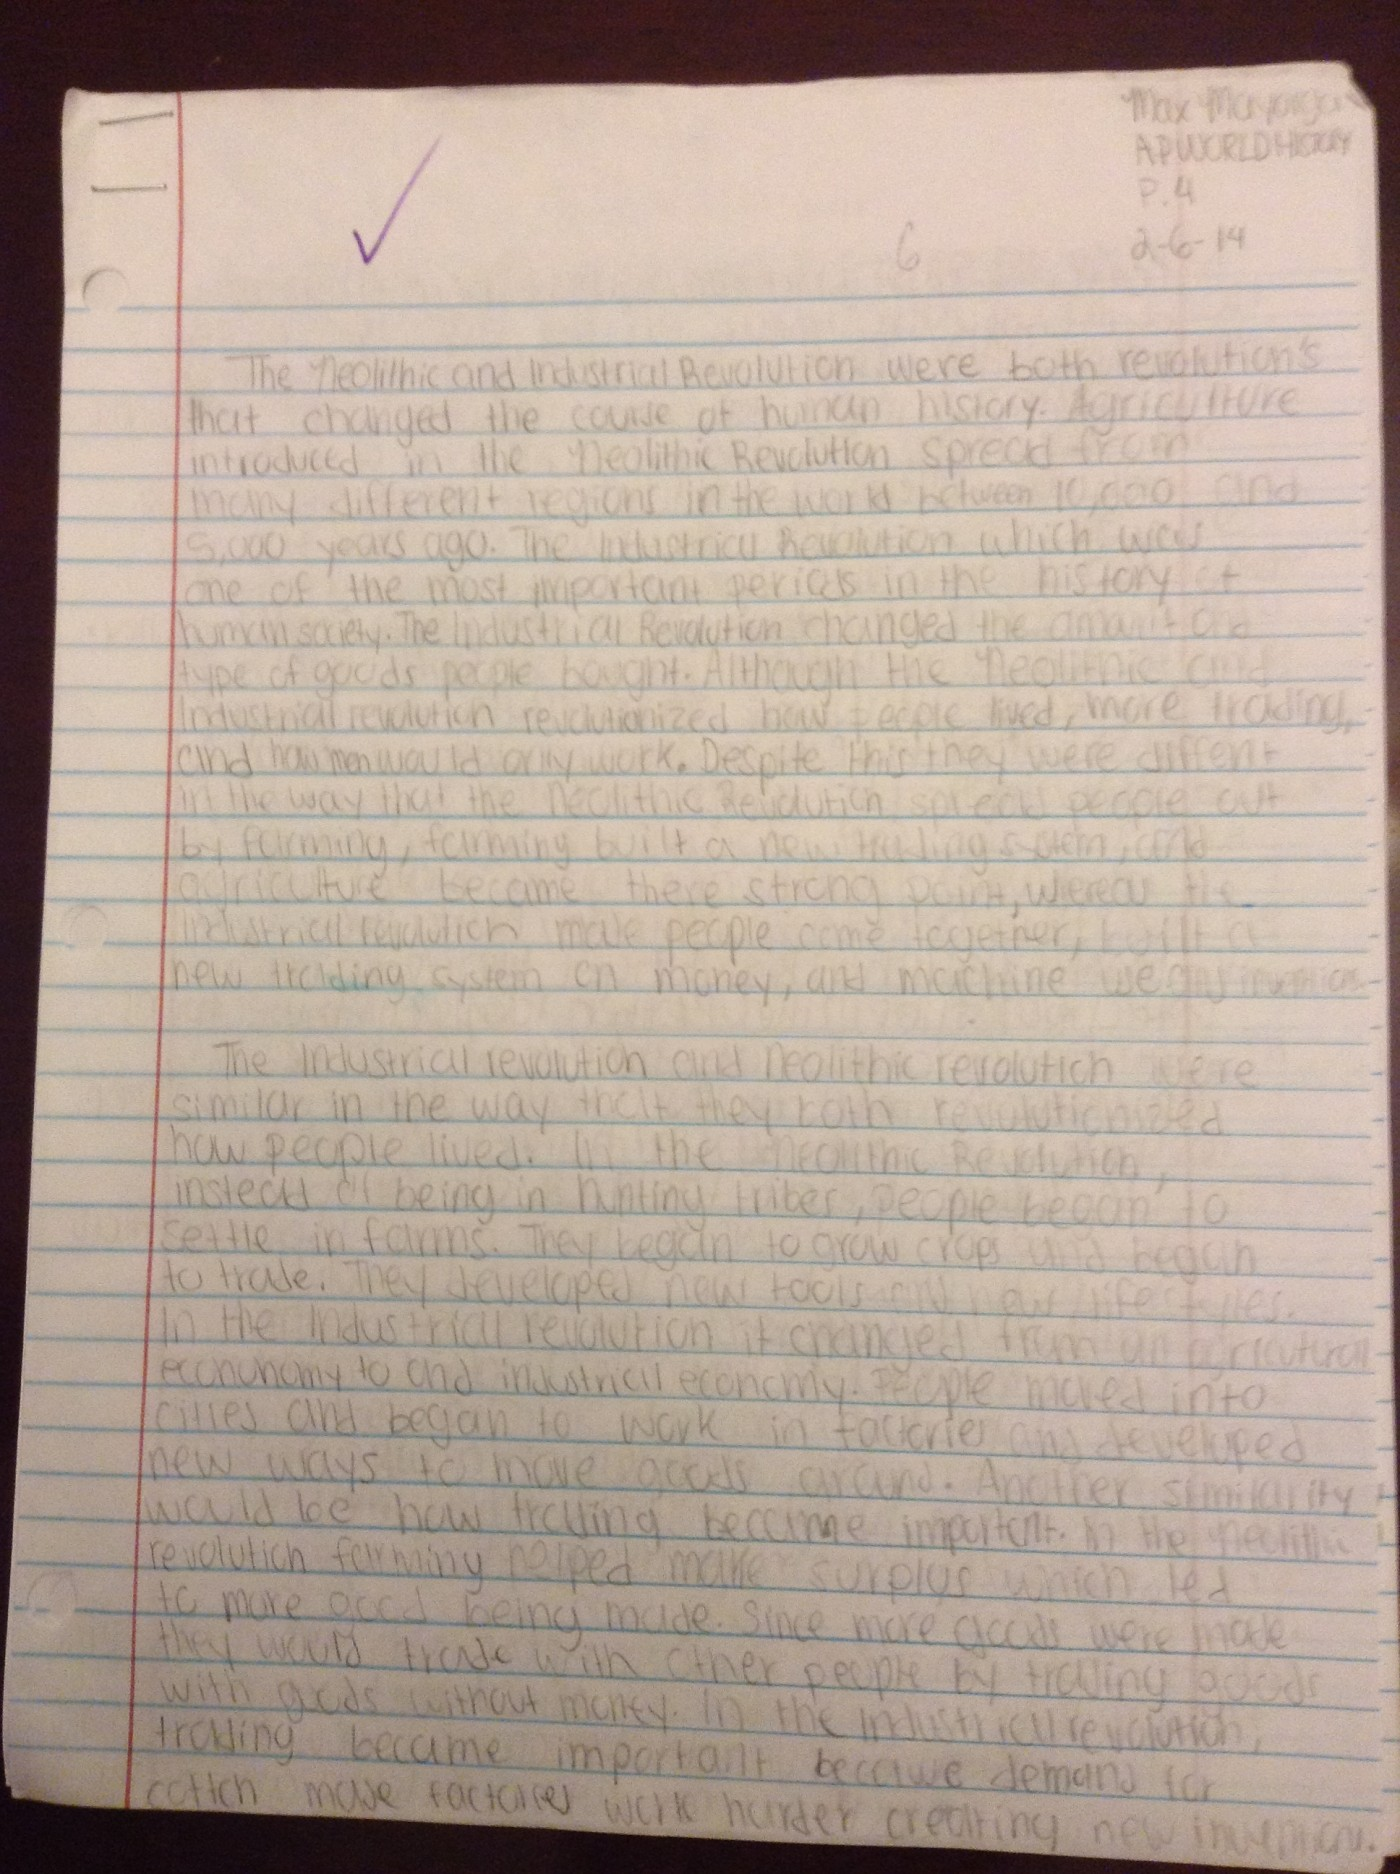 002 Image2010 Neolithic Revolution Essay Fearsome Agricultural Thematic And Industrial 1400